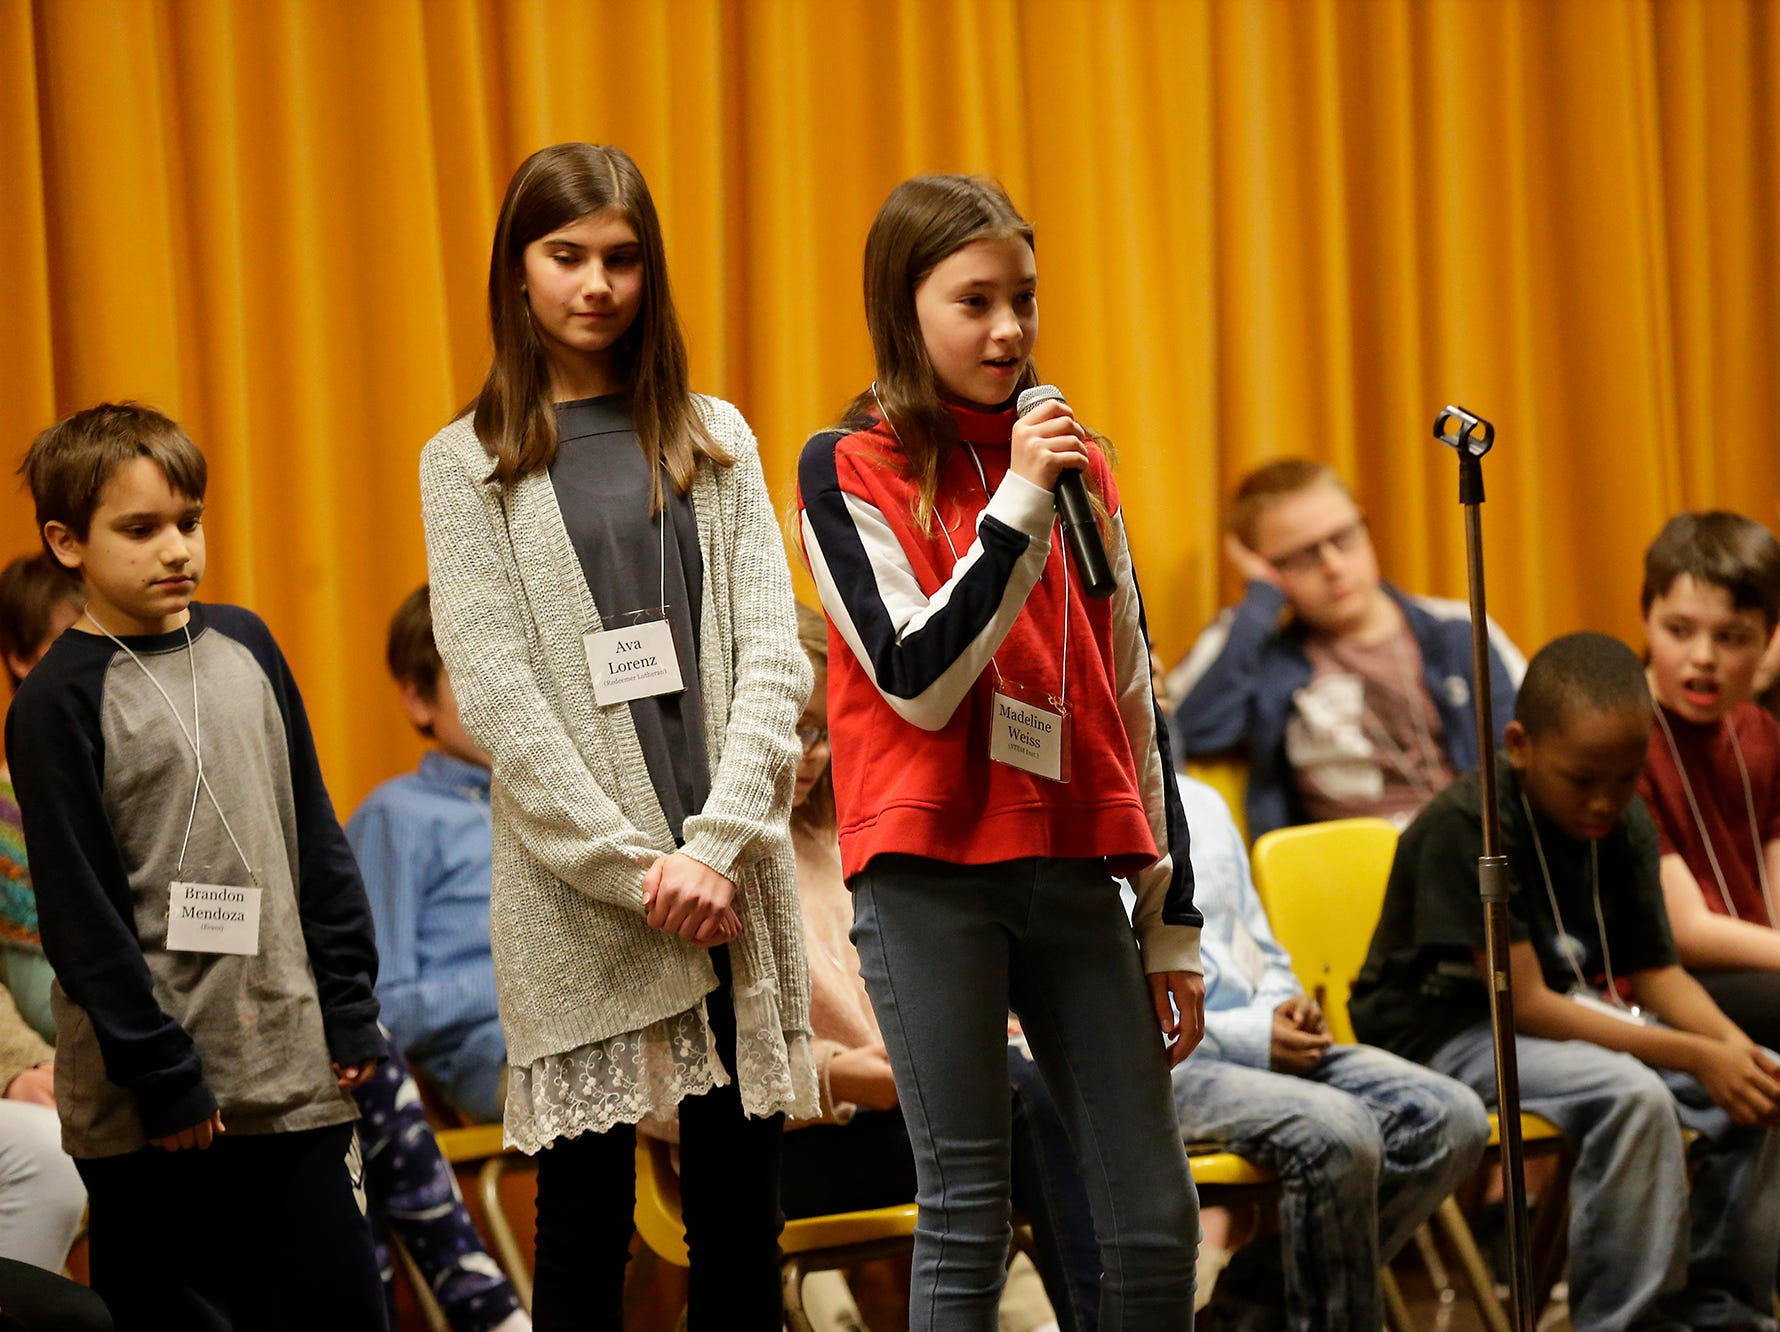 Madeline Weiss of STEM Institute competes in the Fond du Lac citywide spelling bee Tuesday, February 26, 2019 at These Middle School in Fond du Lac, Wis. Doug Raflik/USA TODAY NETWORK-Wisconsin